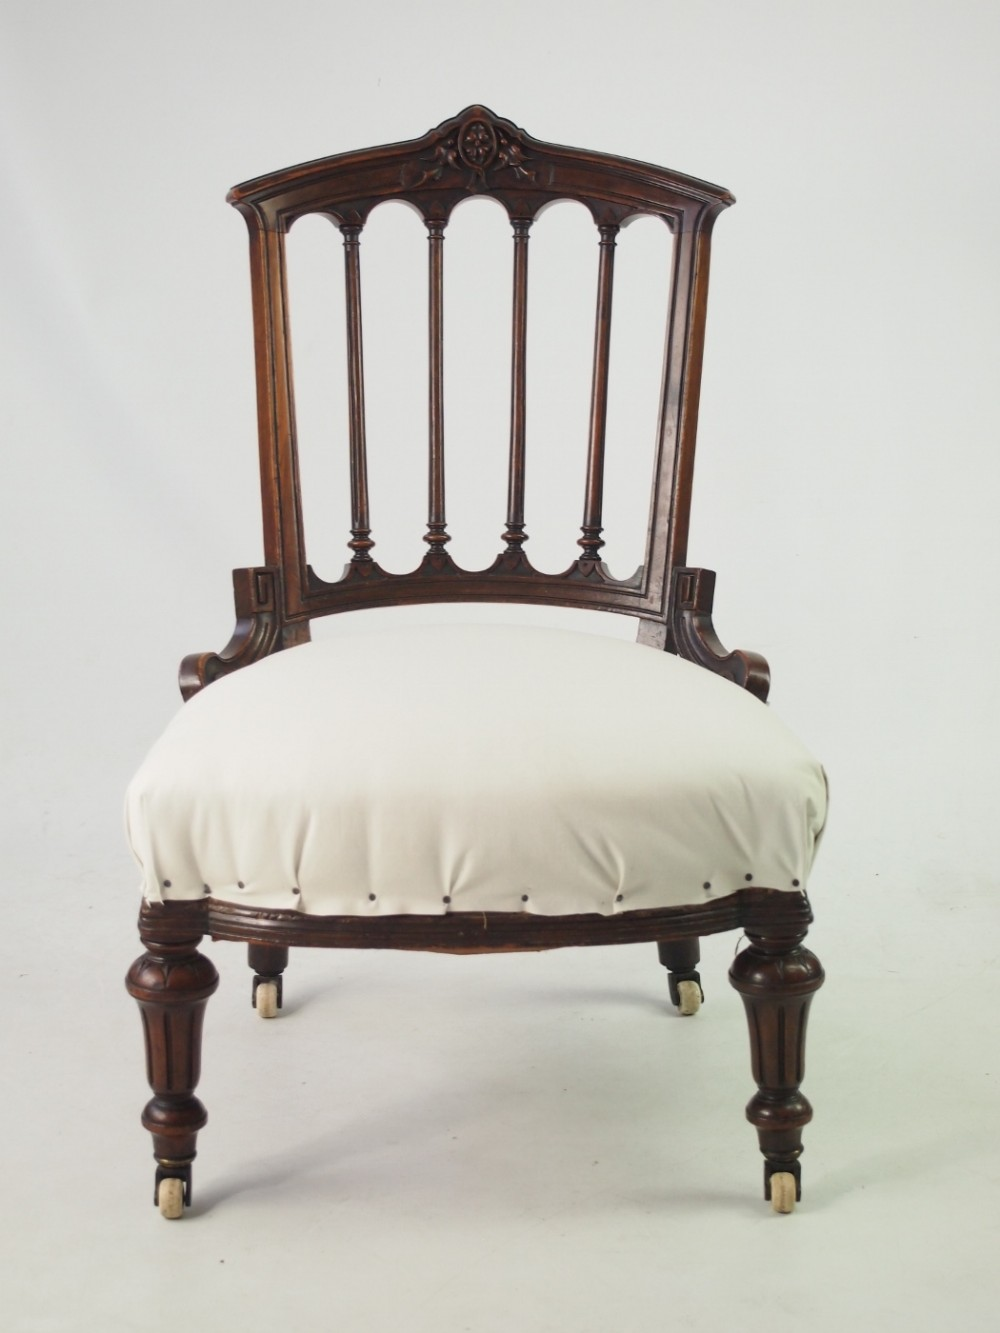 Small Victorian Bedroom Chair Or Dressing Table Chair